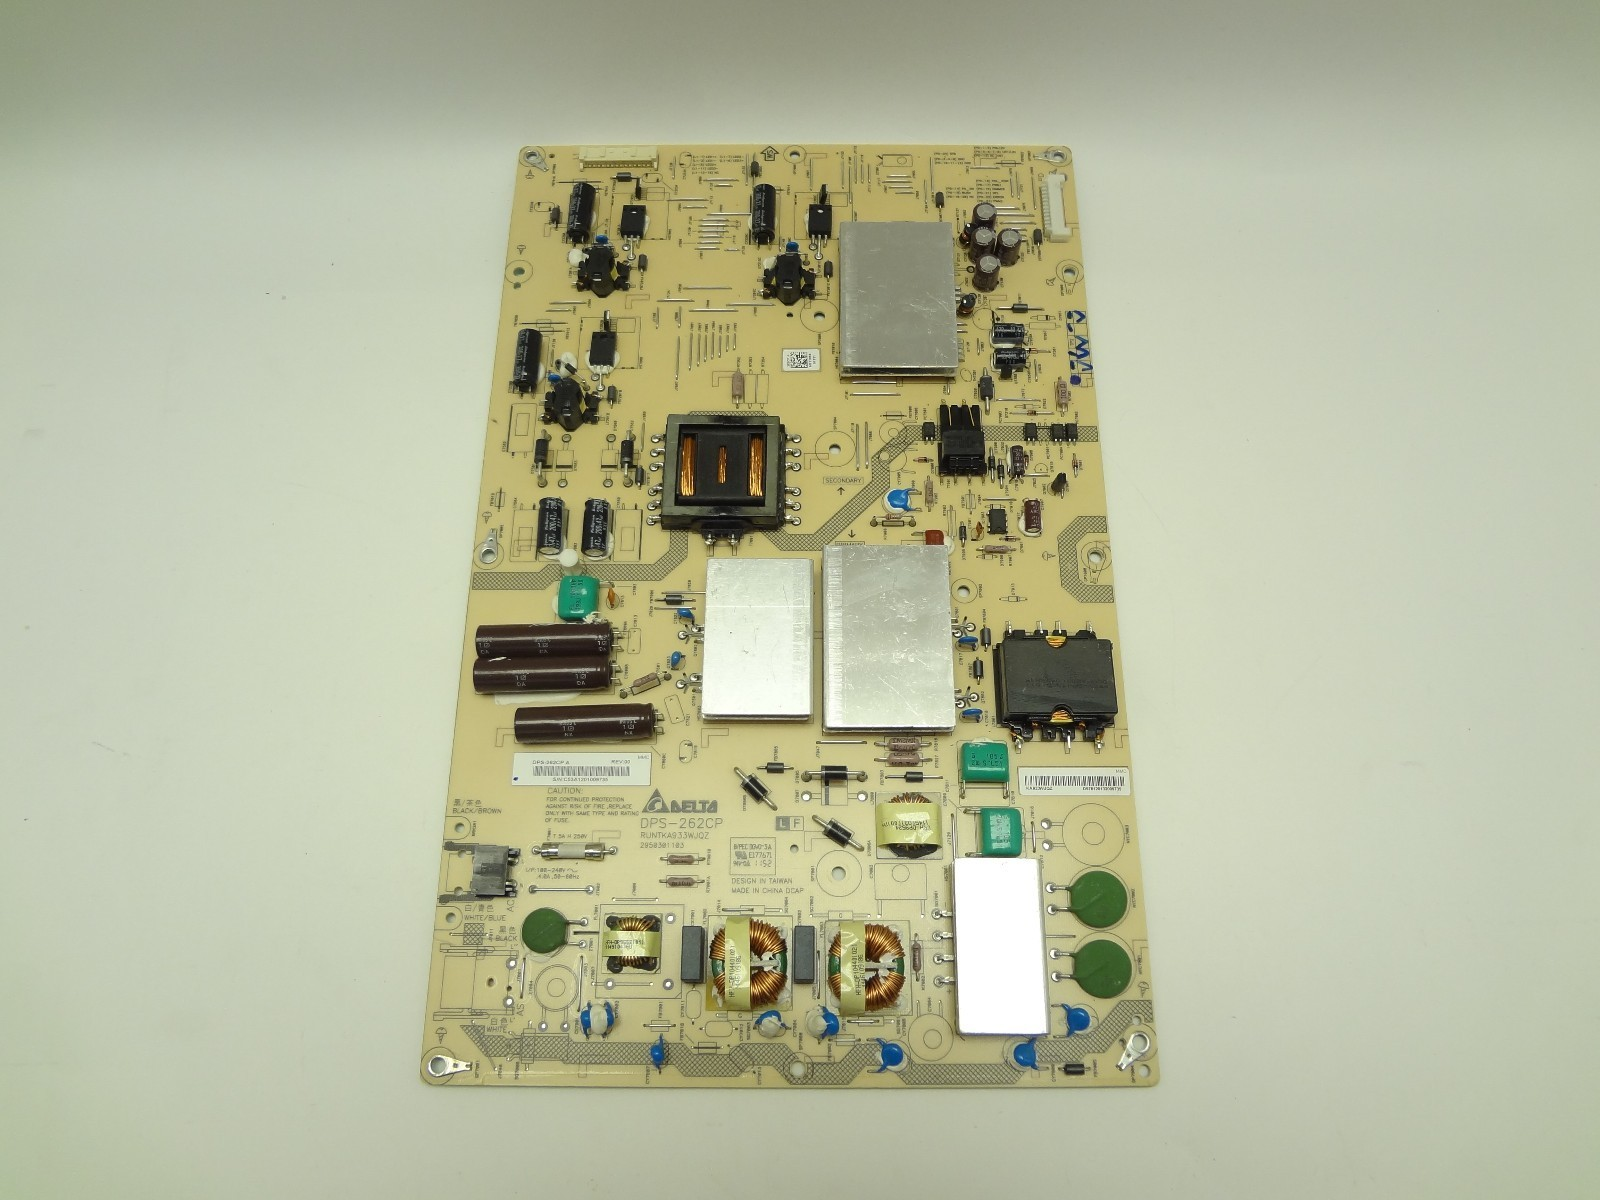 "Sharp 70"" LC-70LE640U DPS-262CP LCD LED Power Supply Board RUNTKA933WJQZ"